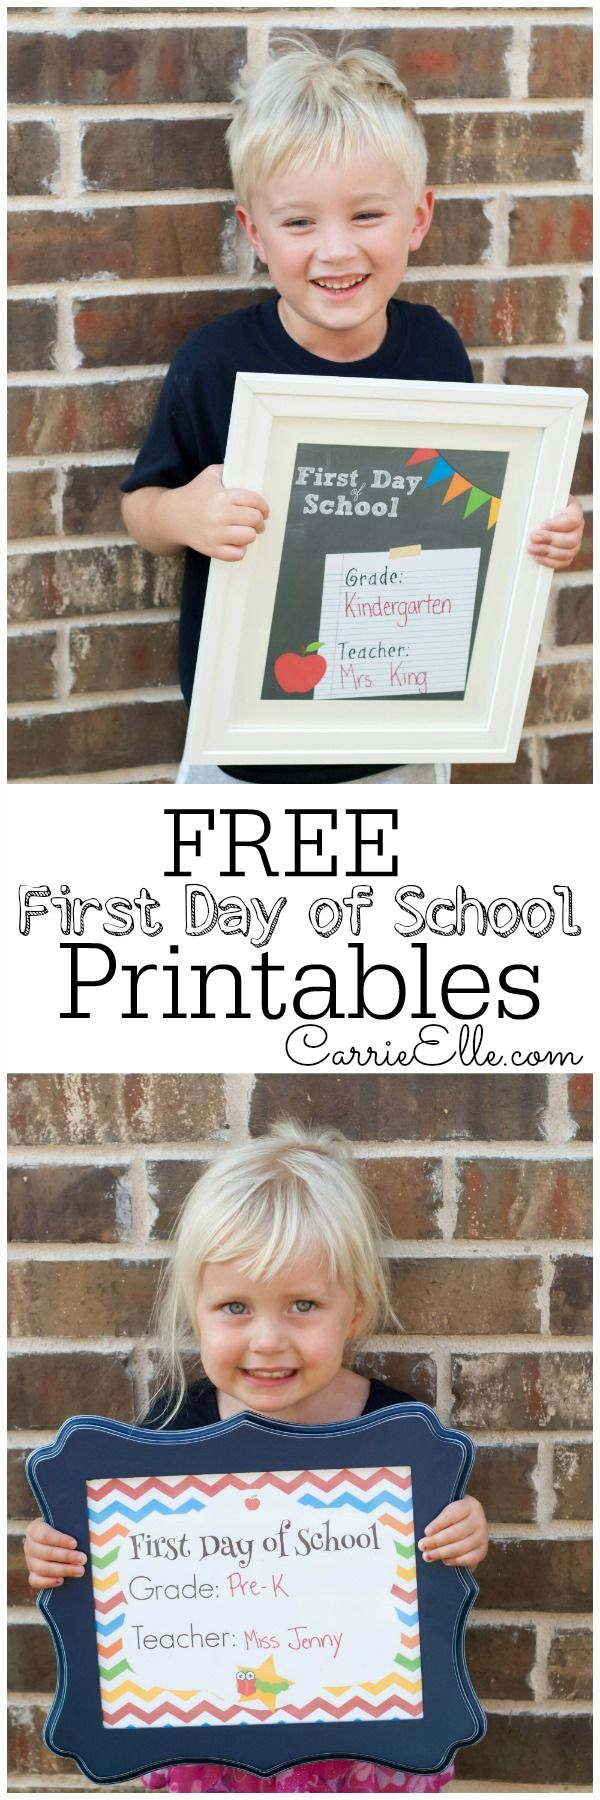 These fun First Day of School Printables are so cute (and they're free, too!).